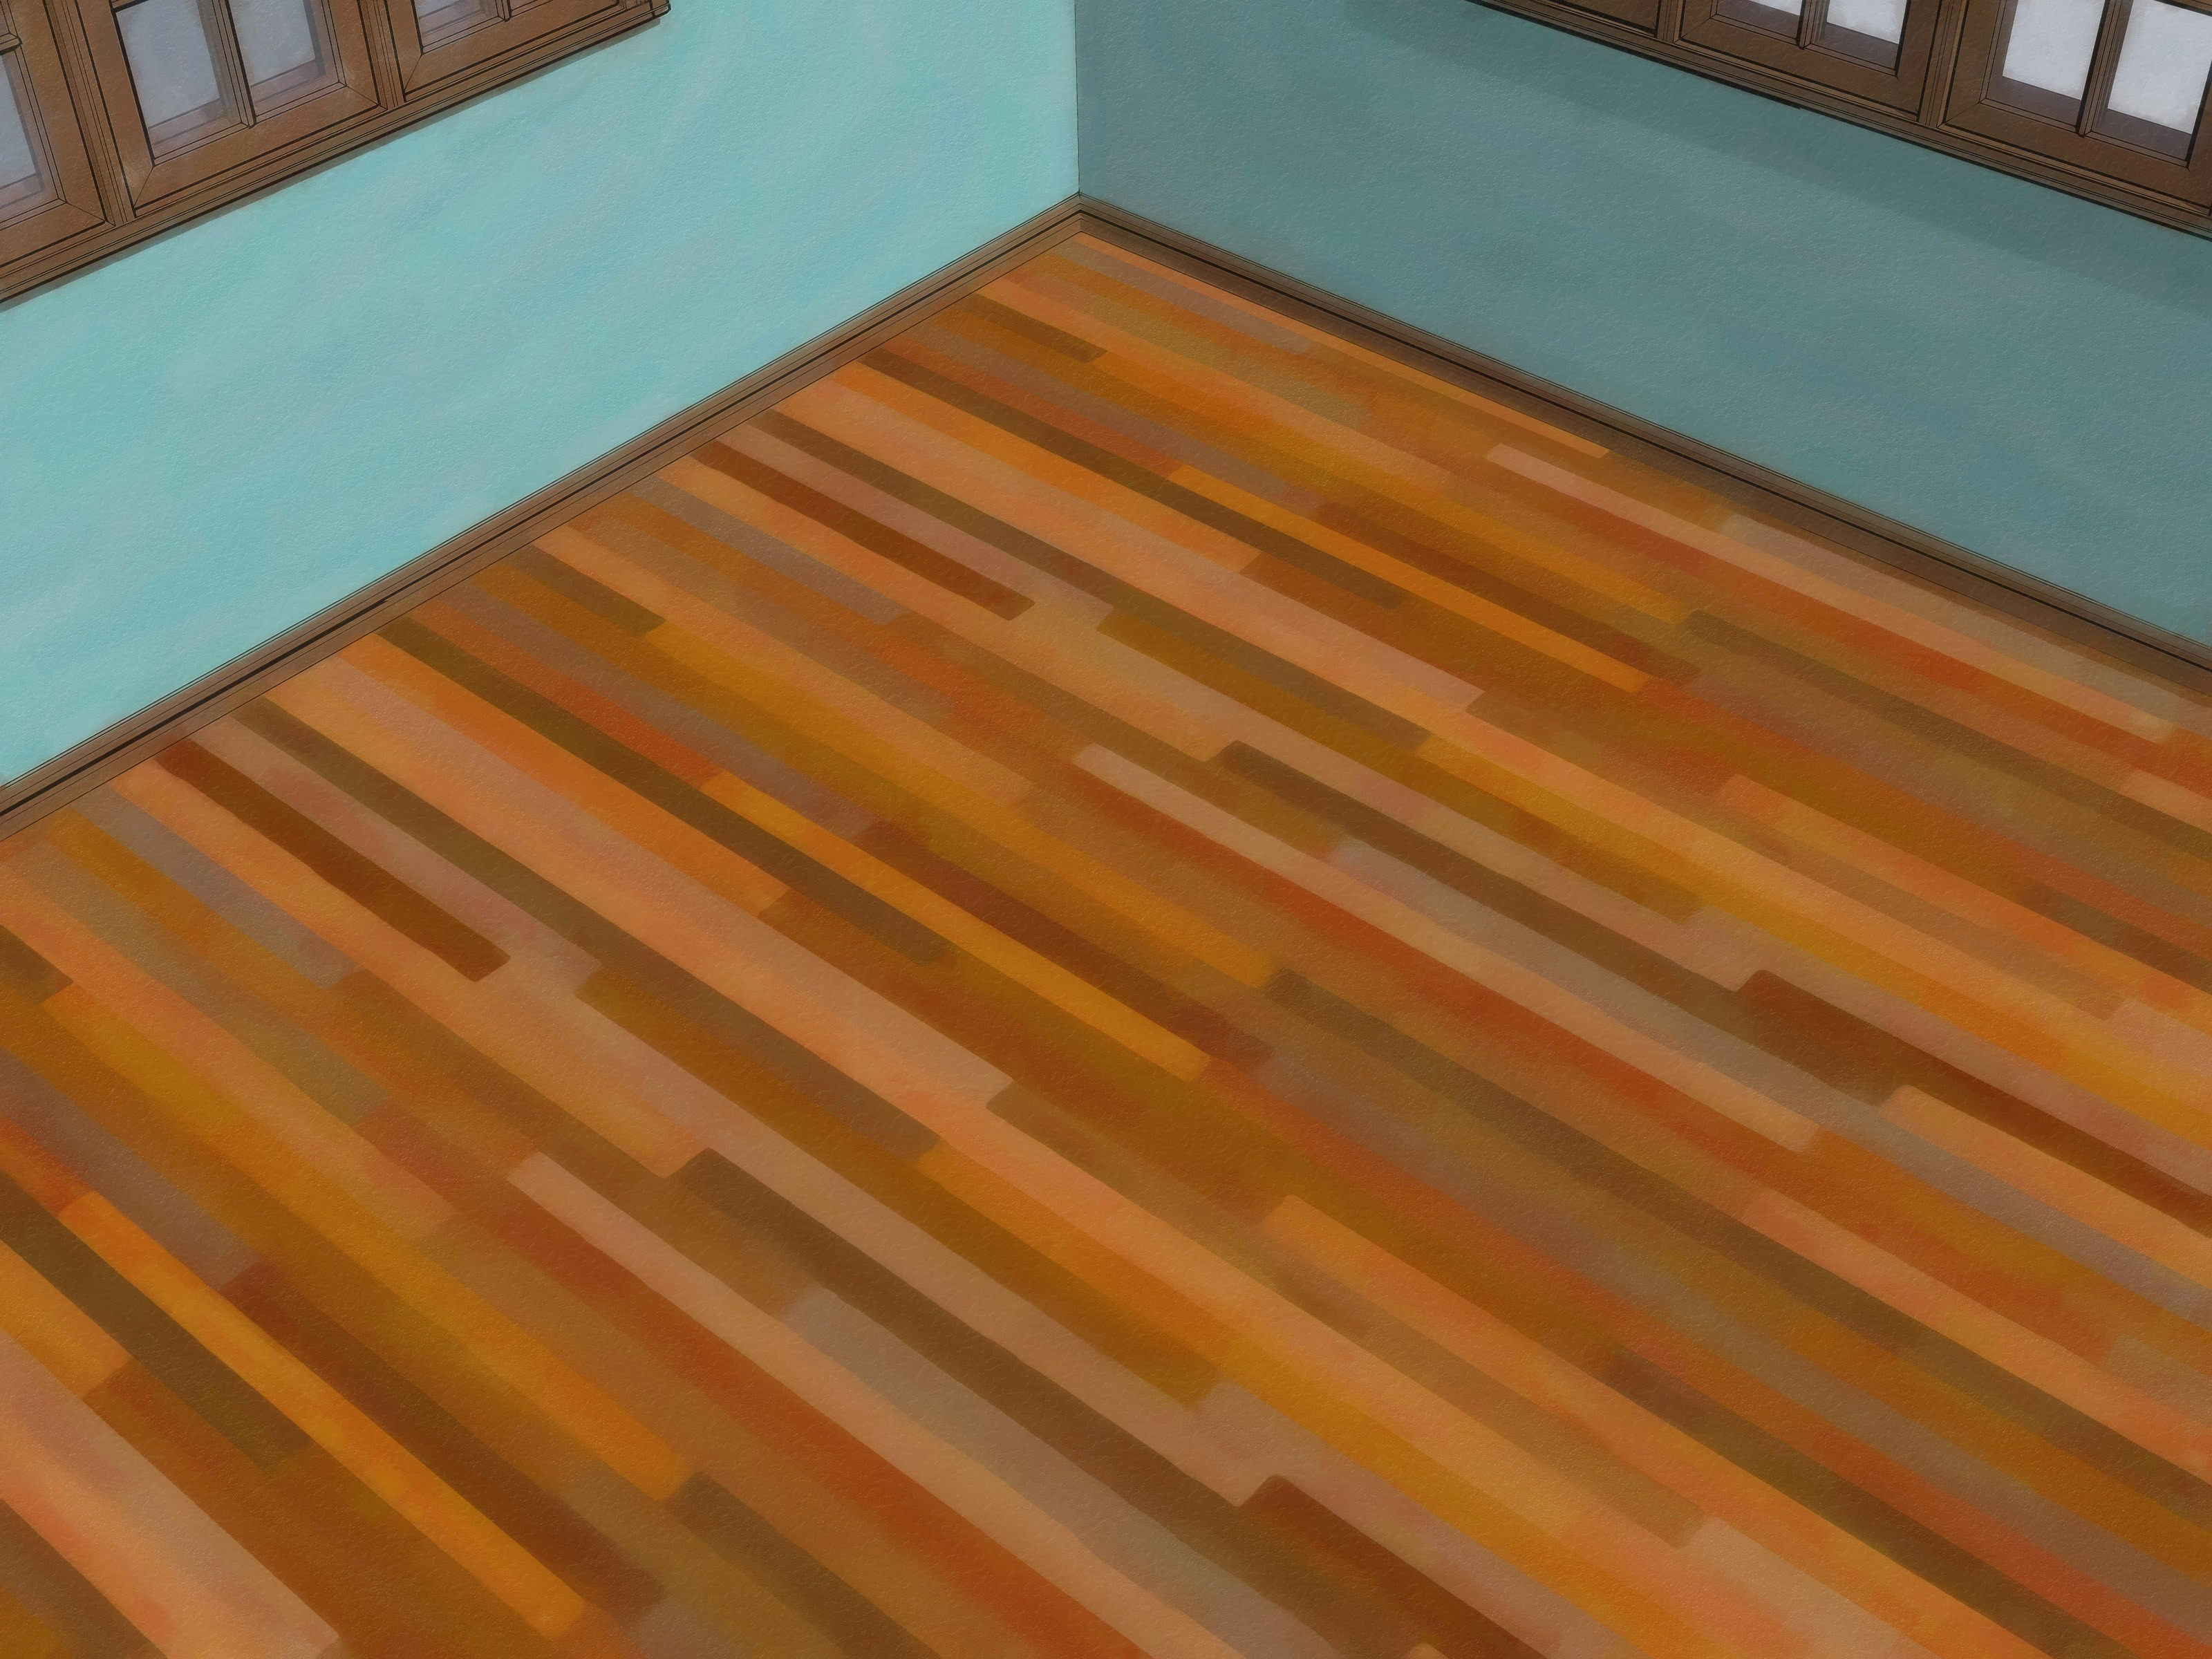 cost of sanding and finishing hardwood floors of 19 unique how much does it cost to refinish hardwood floors gallery with regard to how much does it cost to refinish hardwood floors awesome 50 inspirational sanding and refinishing hardwood